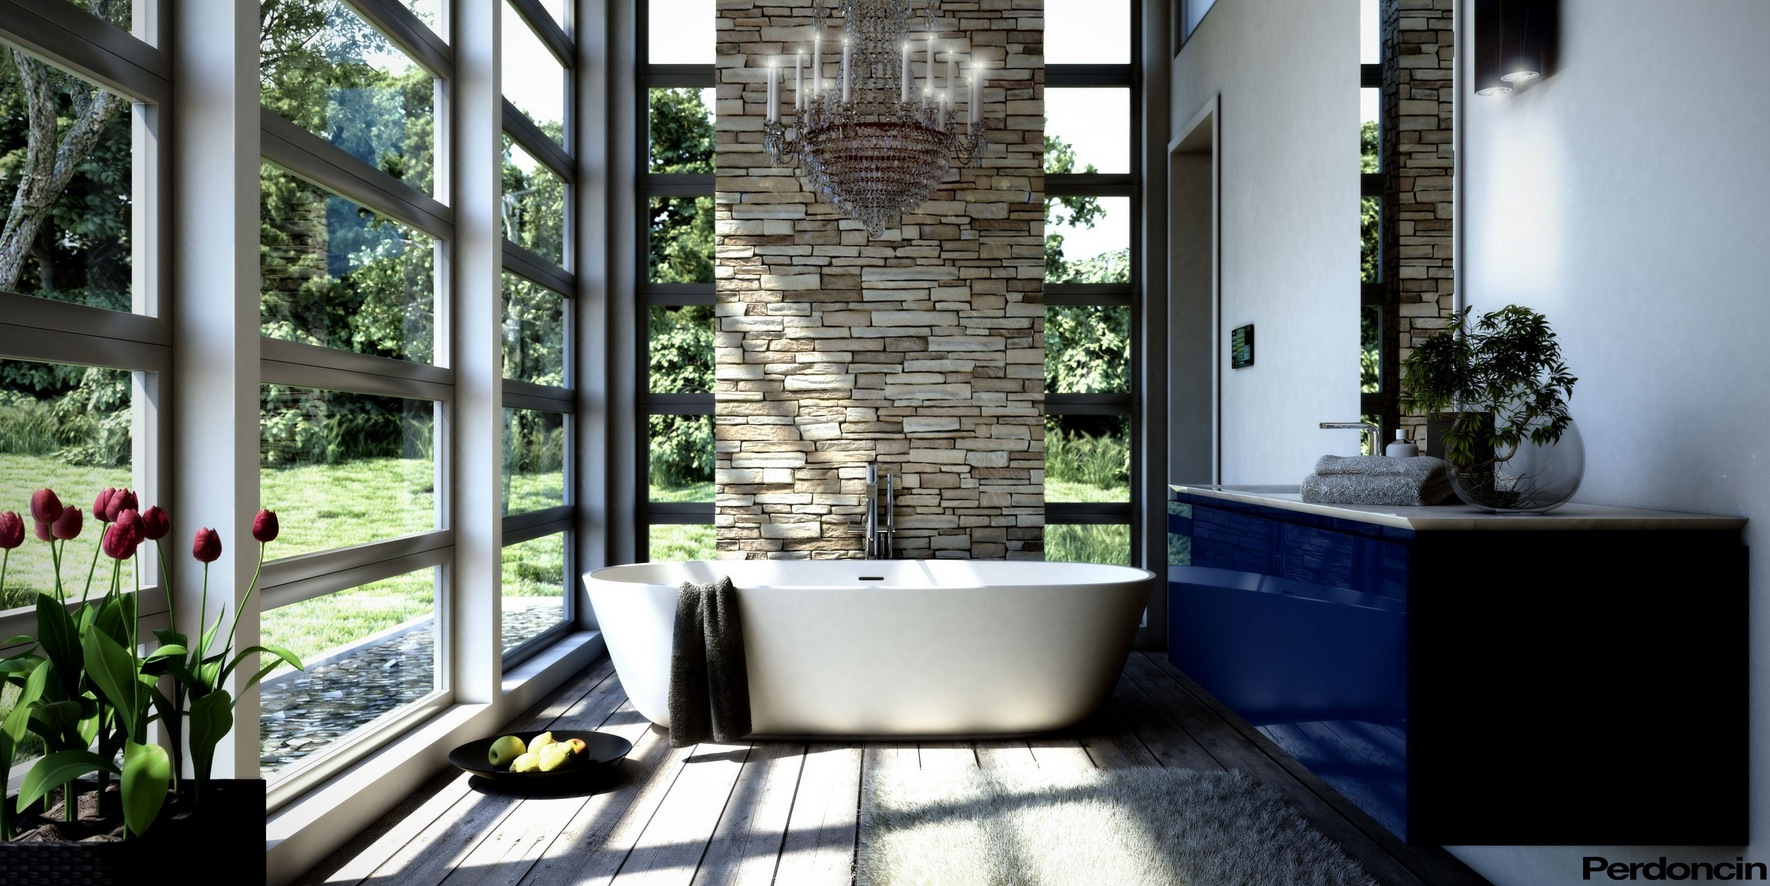 Bathtubs with a view of nature for Salle de bain nature